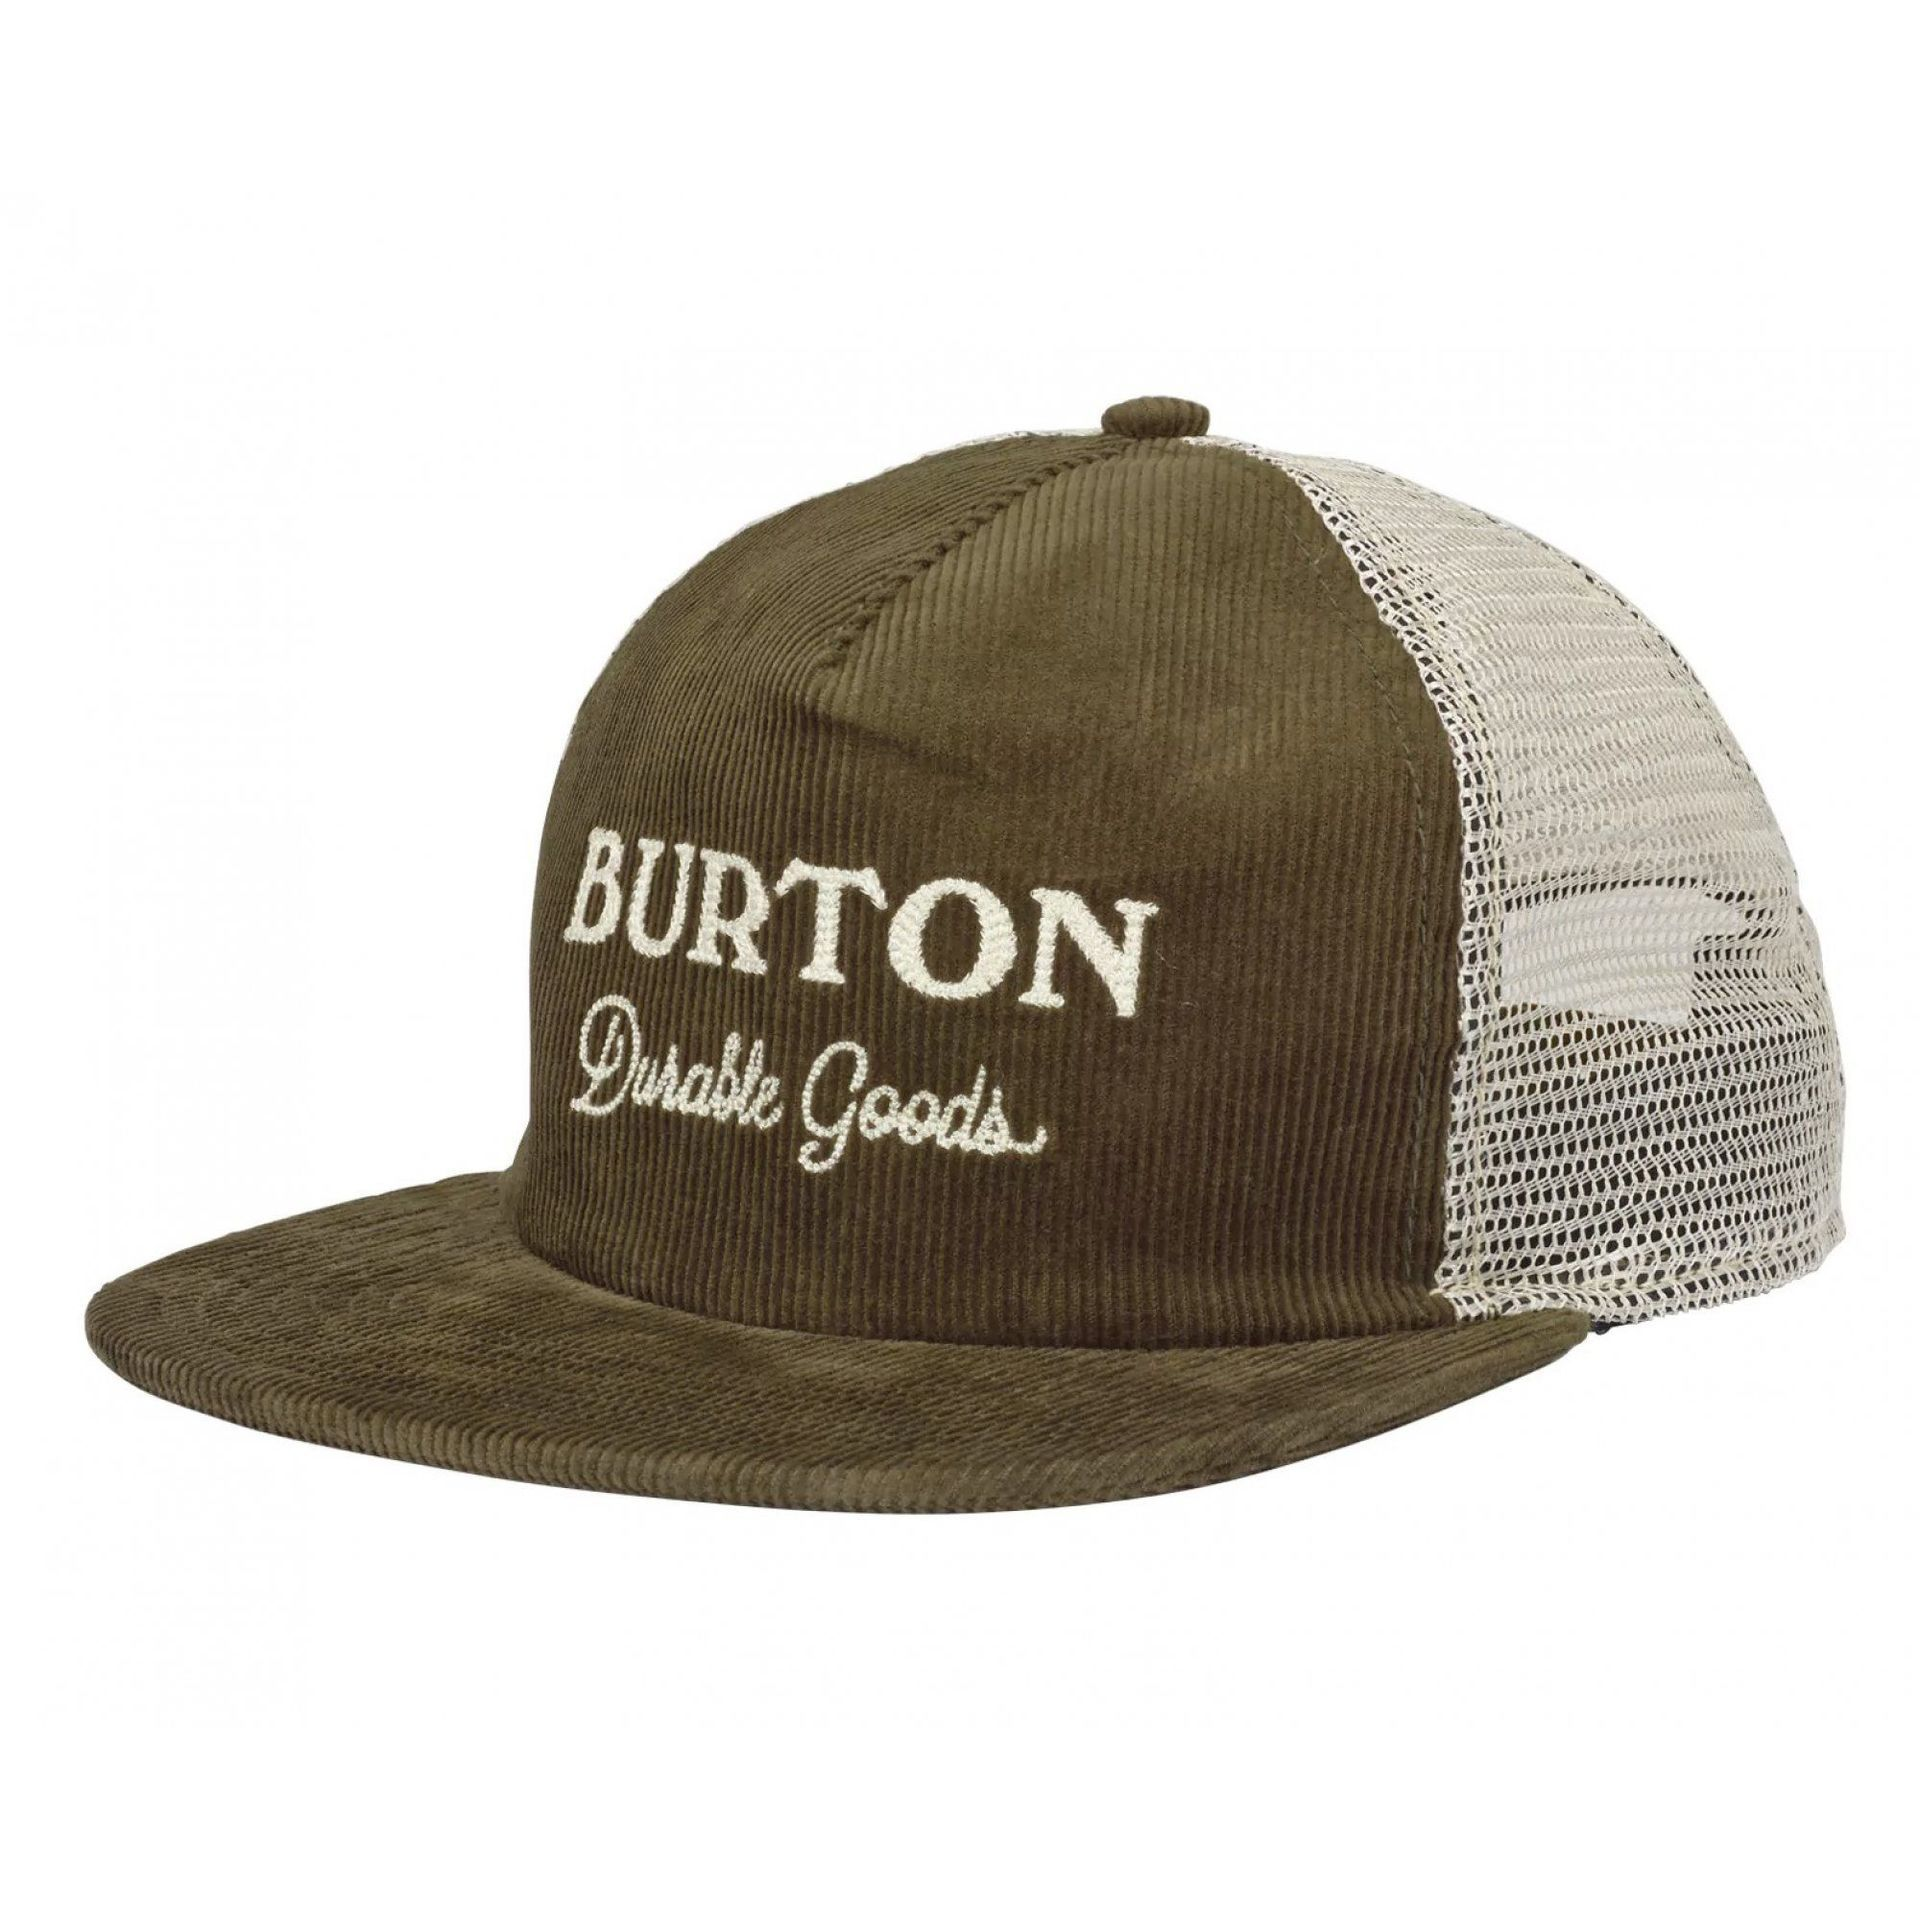 CZAPKA Z DASZKIEM BURTON DURABLE GOODS OLIVE NIGHT